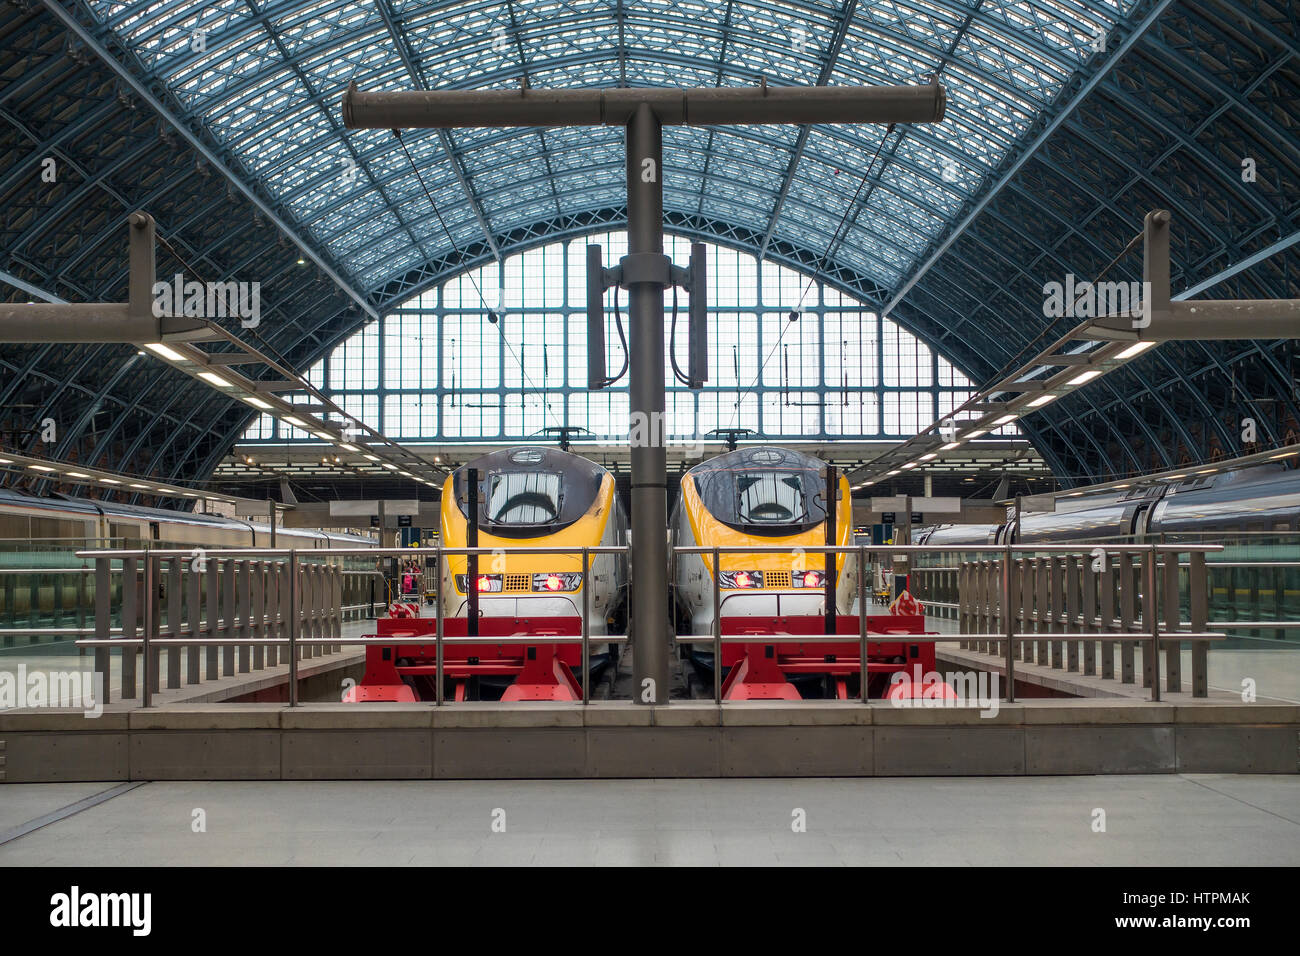 Eurostar Trains ready to depart from St Pancras Station London England - Stock Image